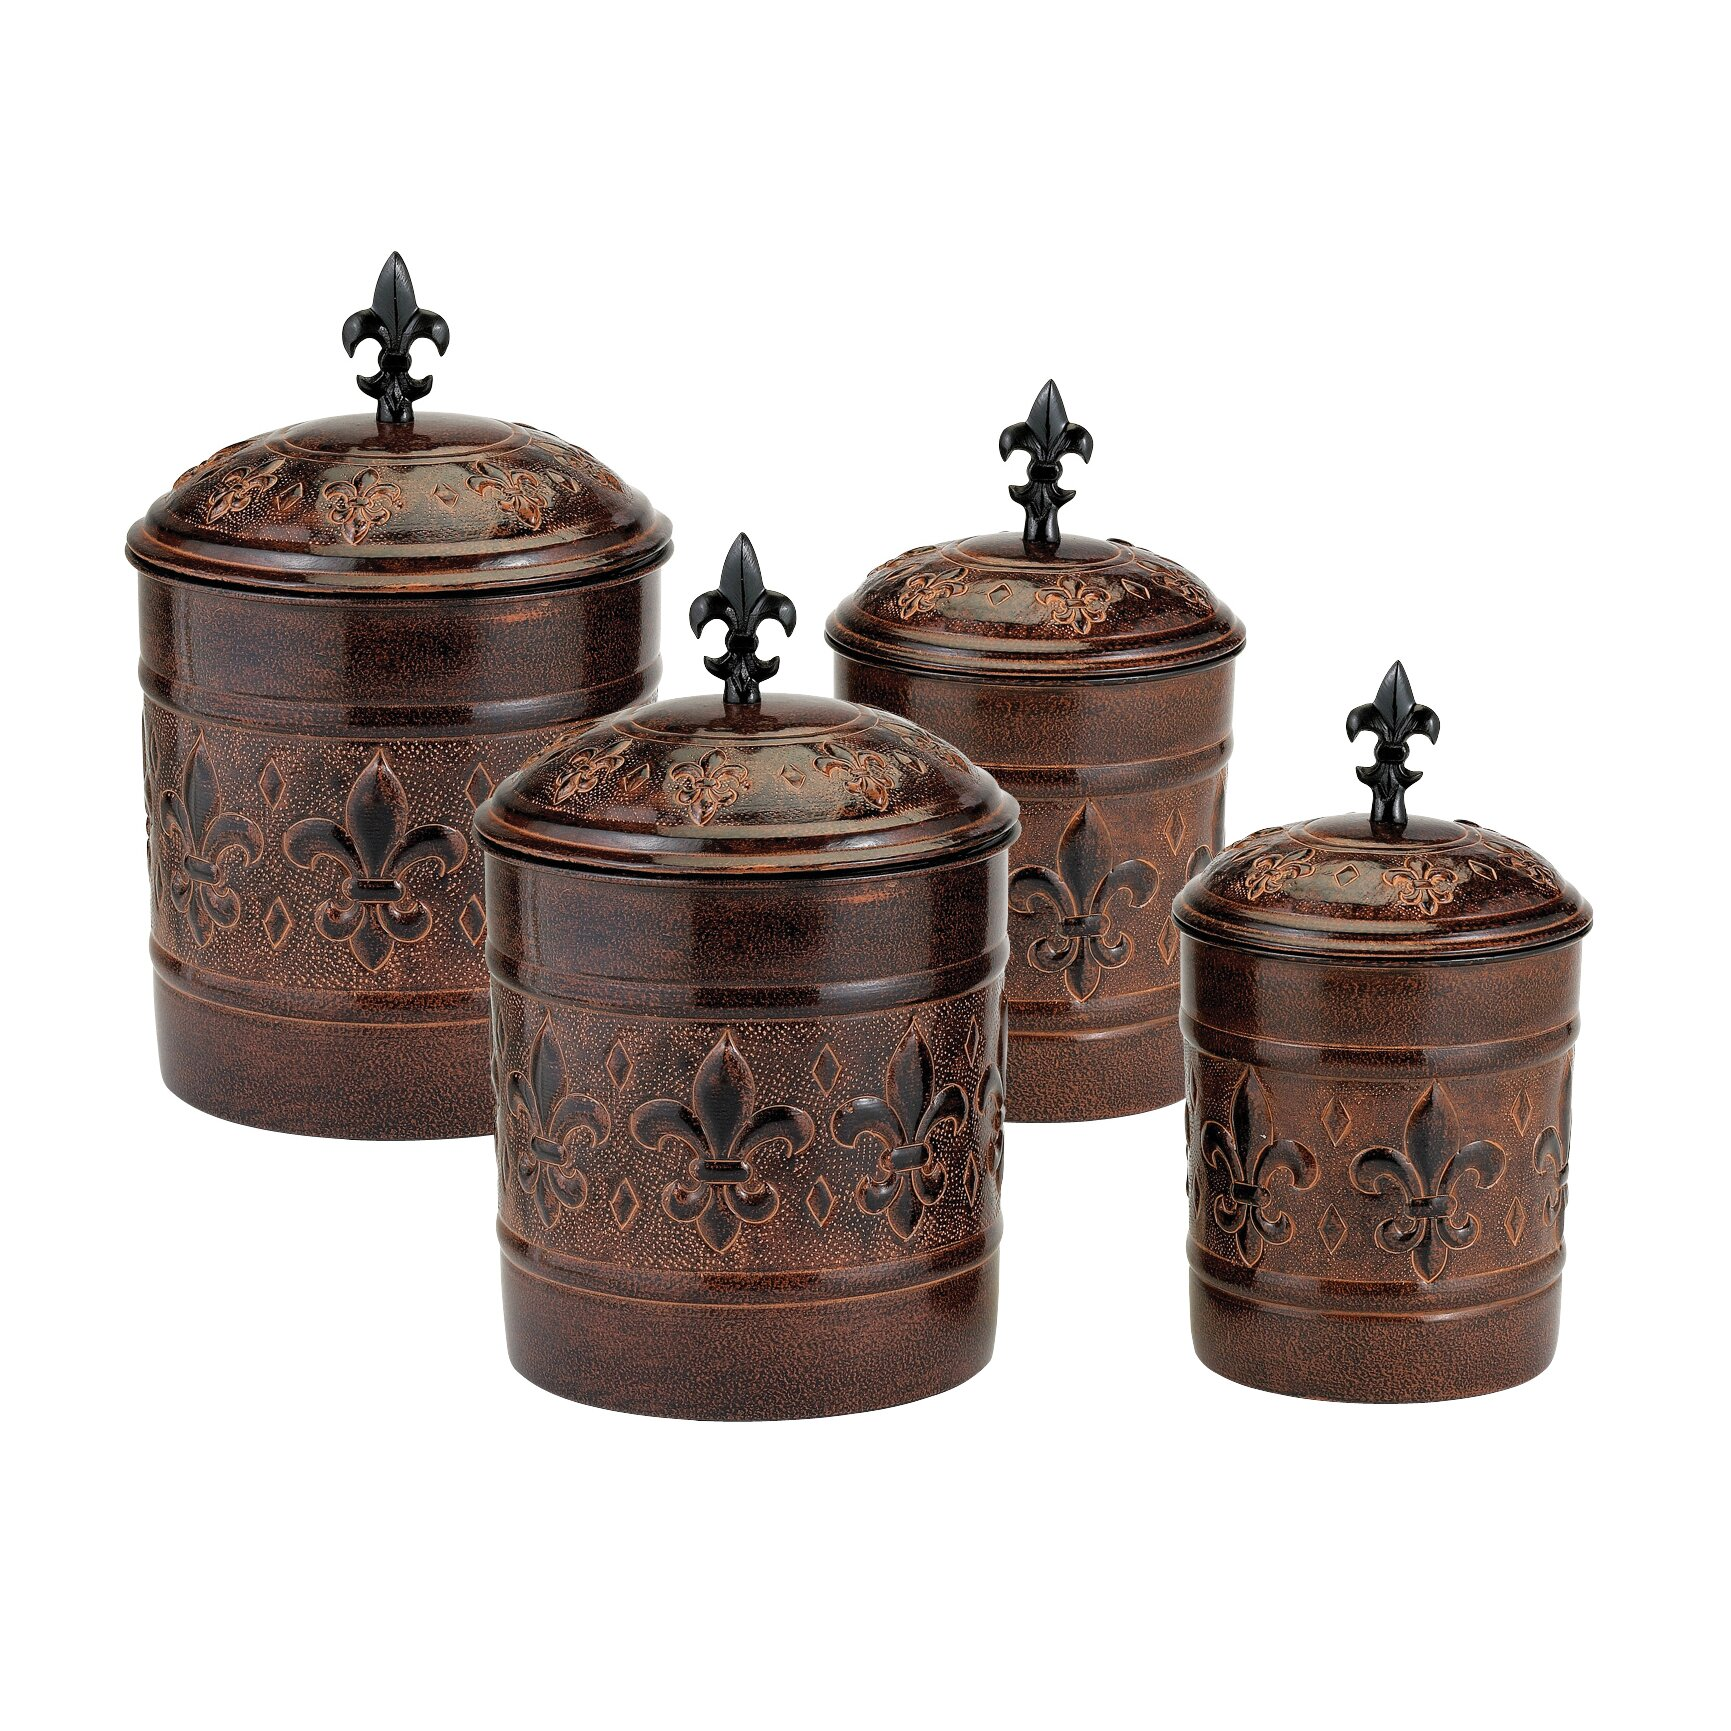 Old dutch versailles 4 piece decorative canister set for Kitchen canisters set 4